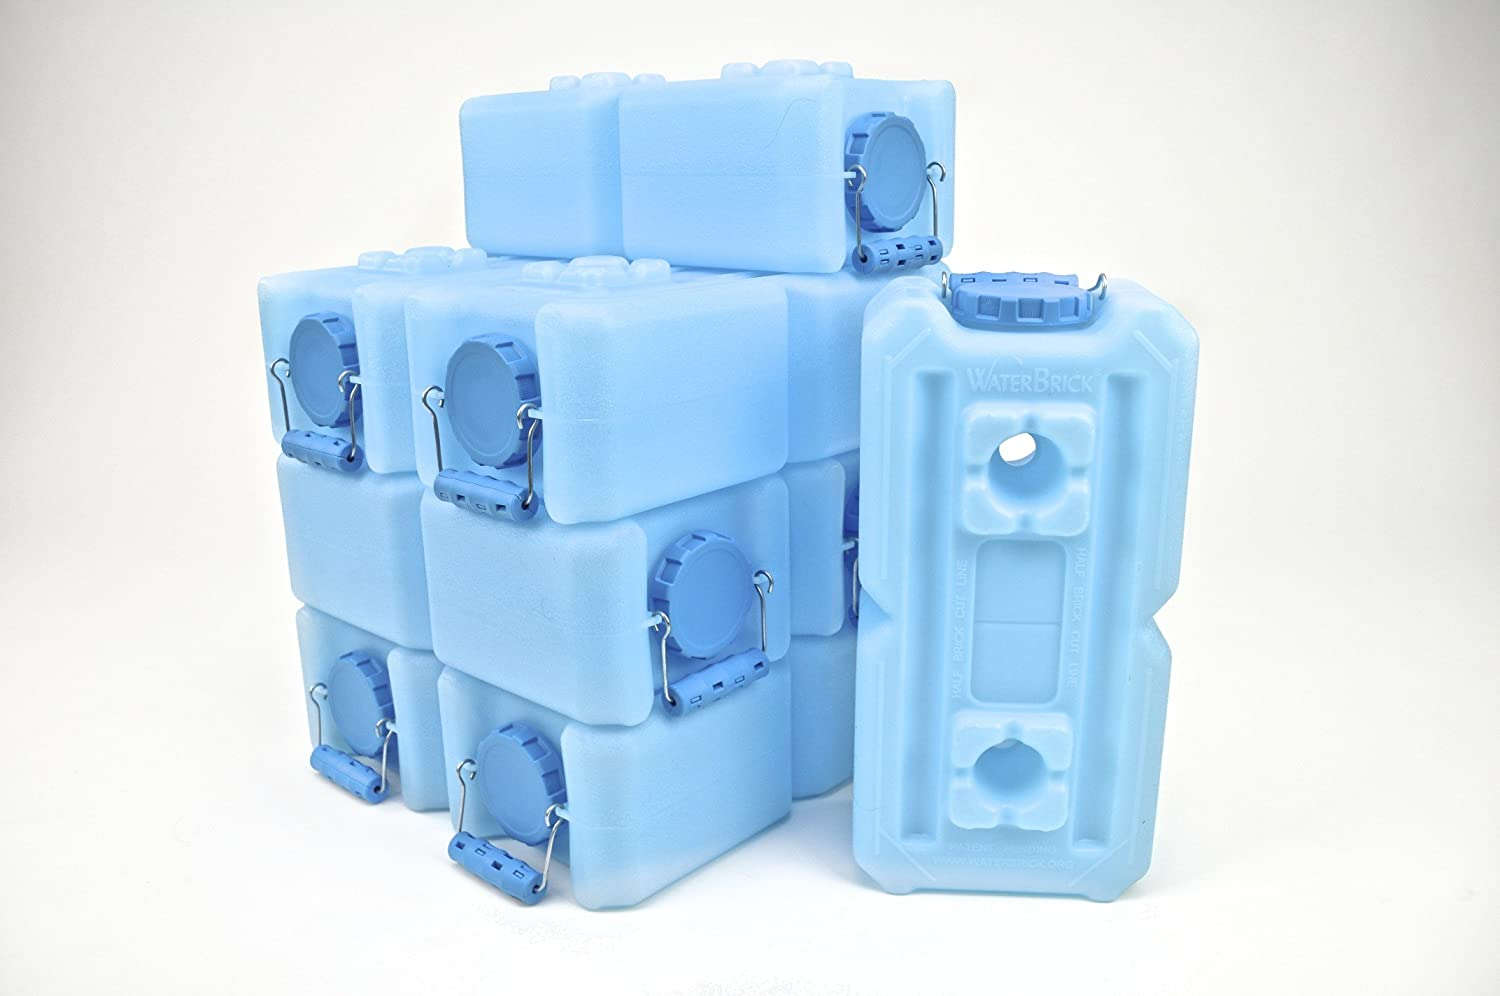 Water Storage Containers - WaterBrick - 8 Pack Blue